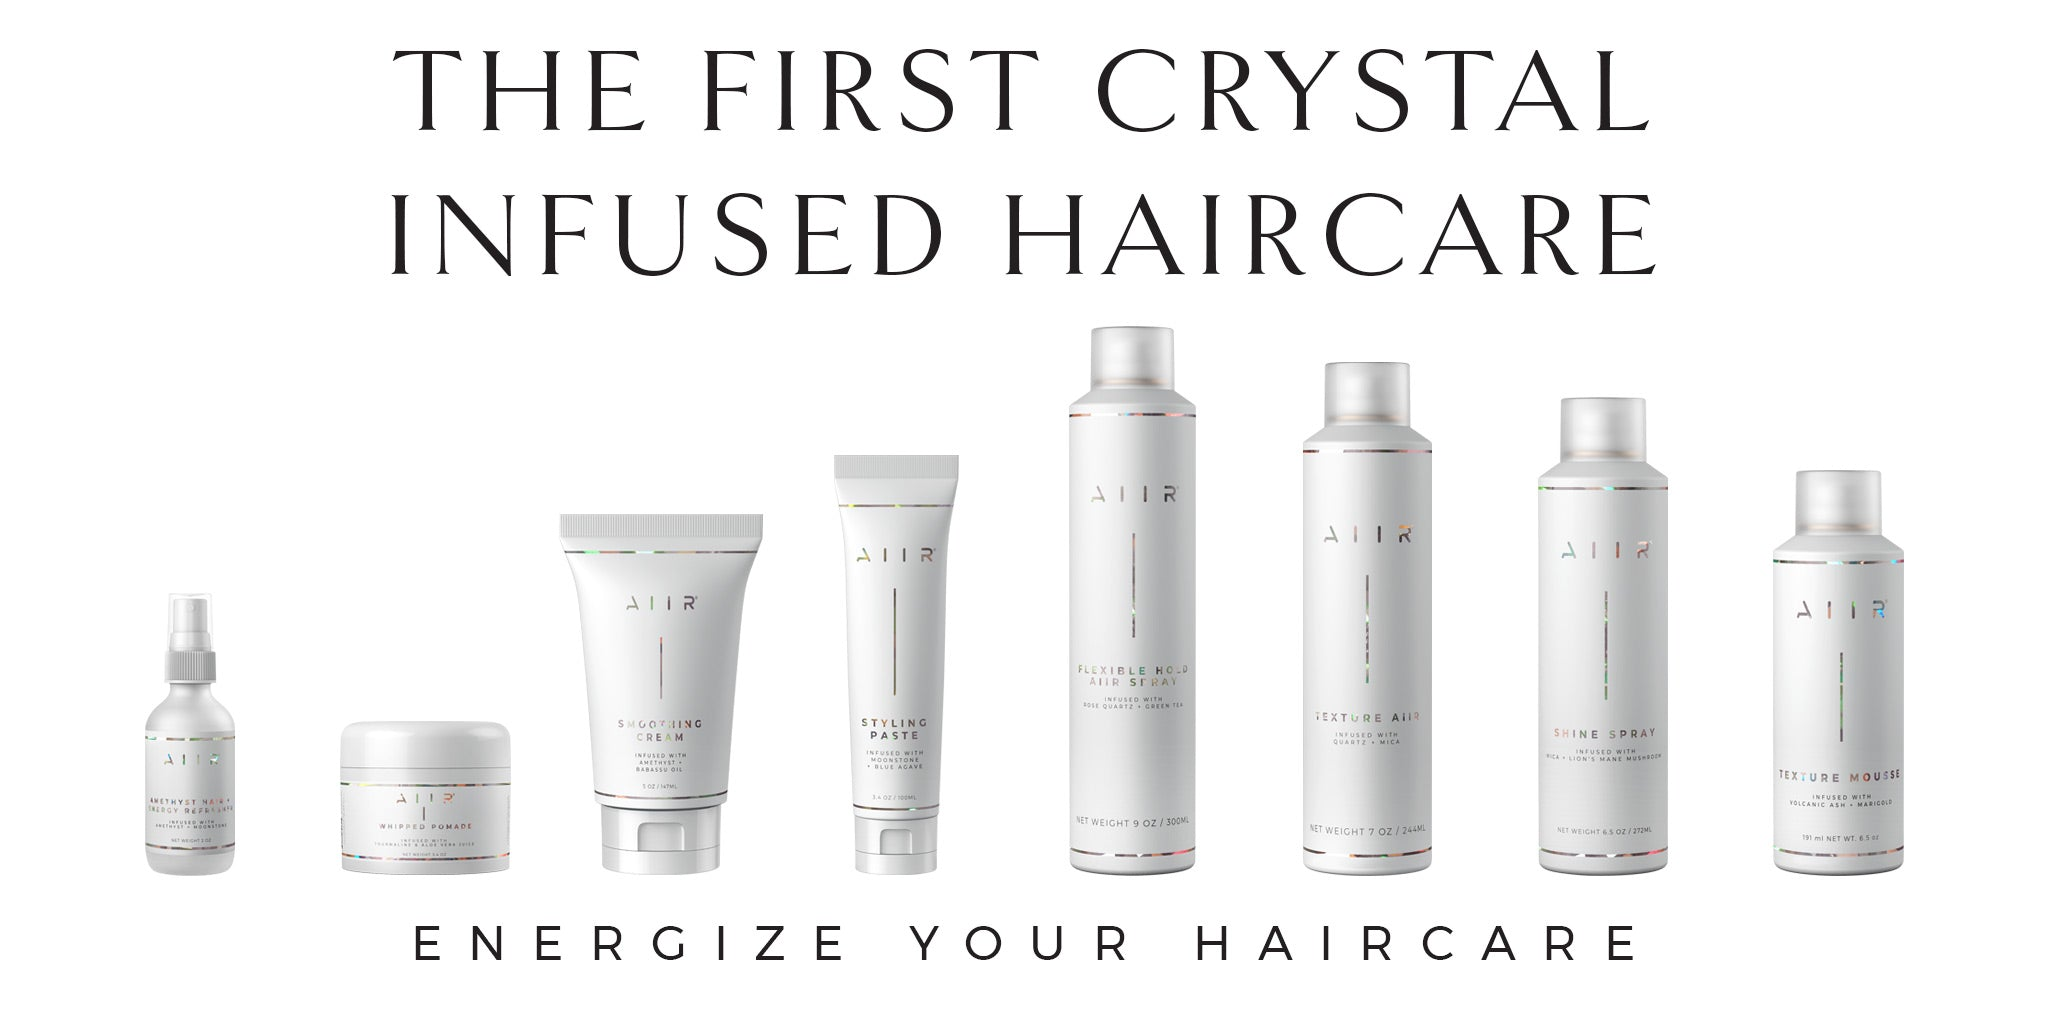 AIIR - The First Crystal Infused Haircare